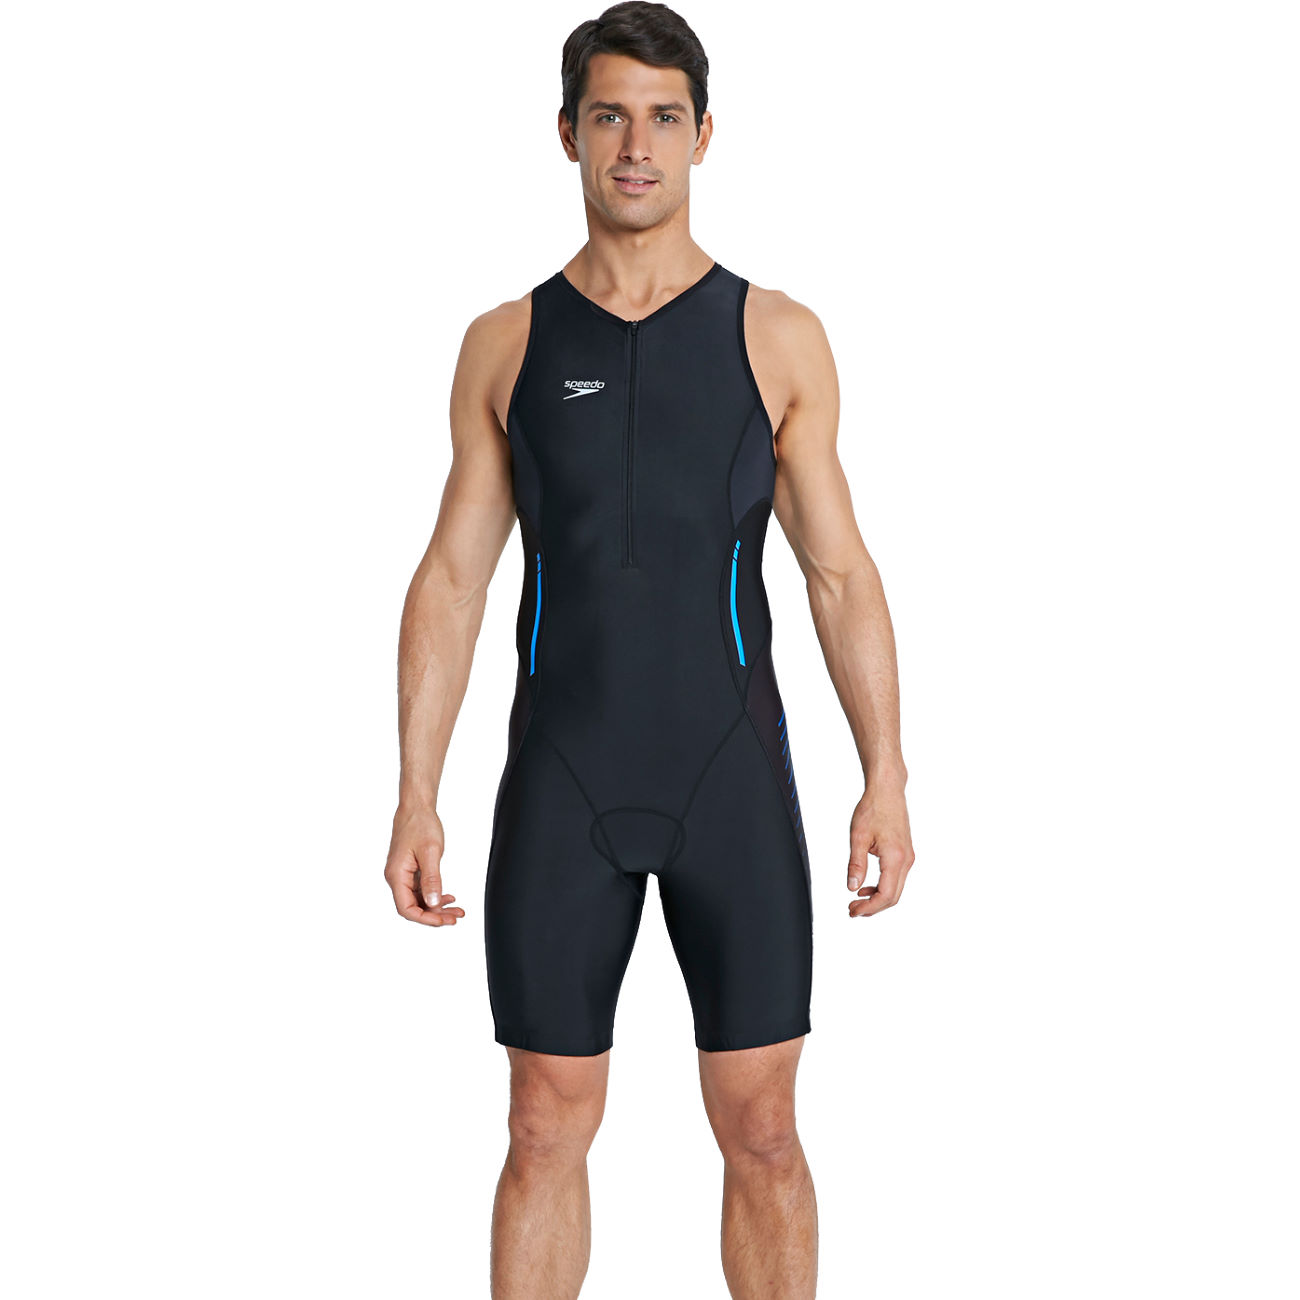 Home Speedo Event Tri Suit